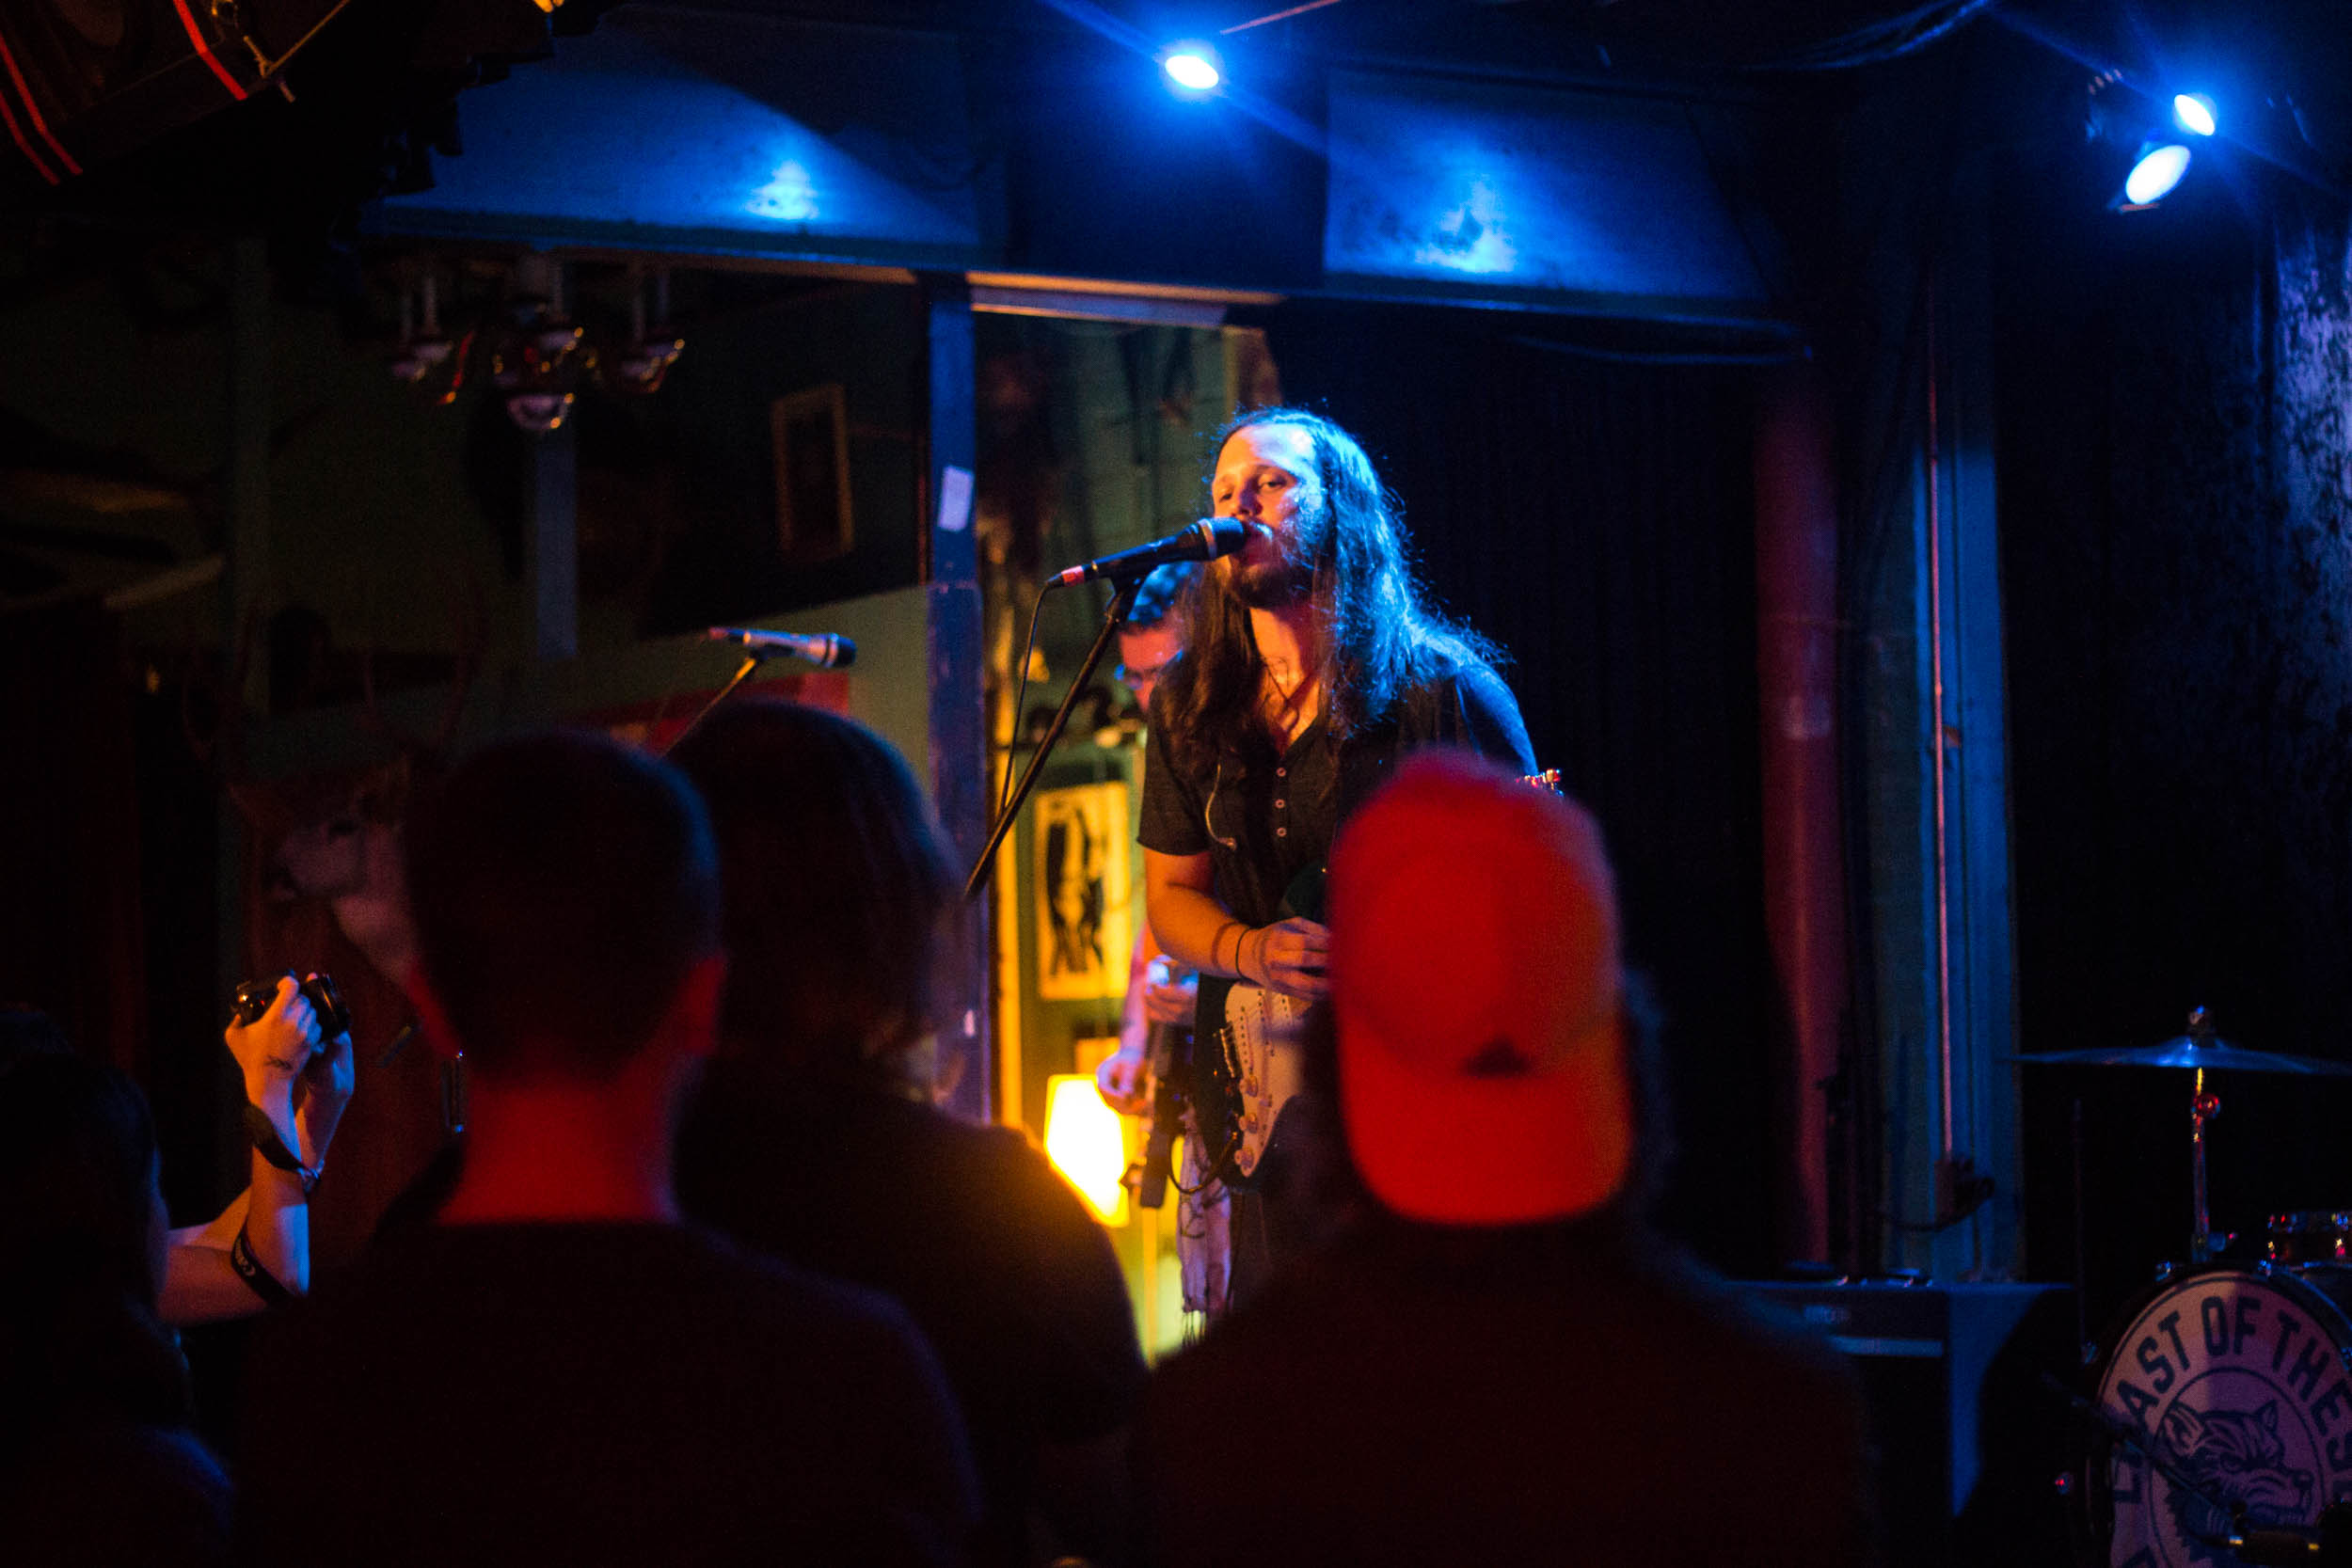 051317_Least of These at Dan's-17.jpg